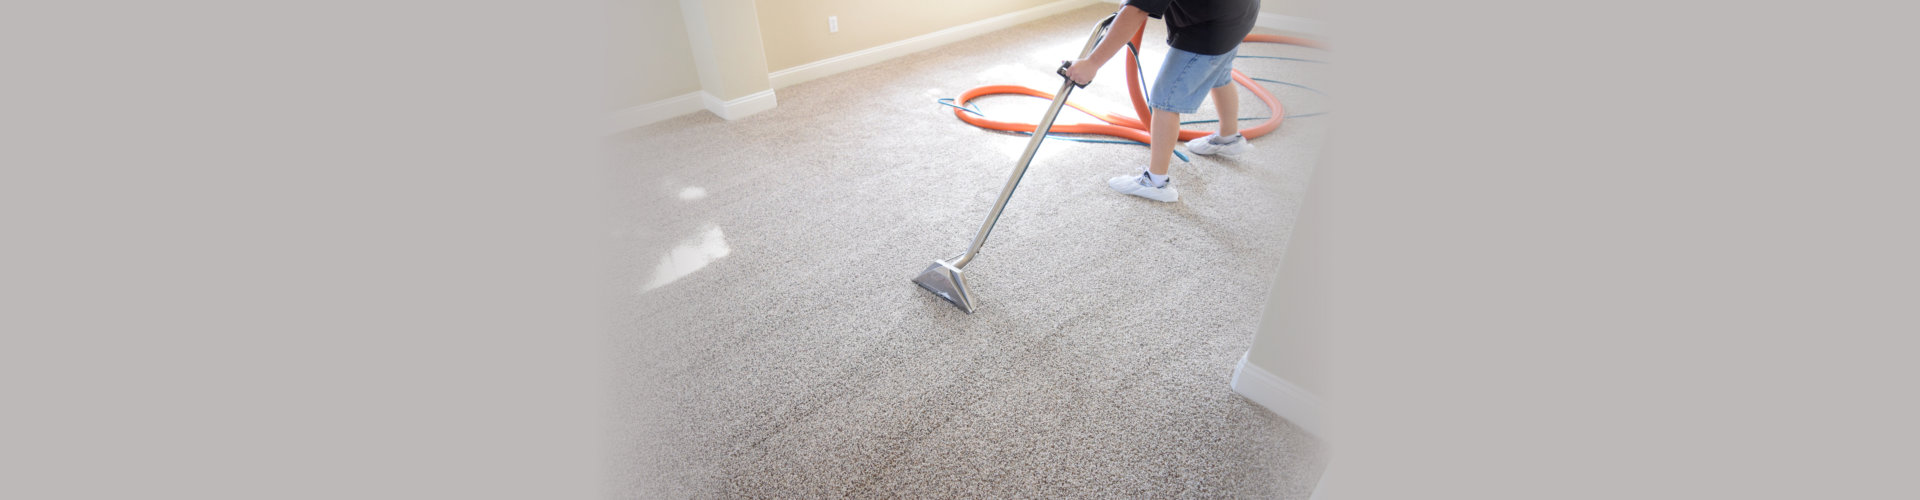 Professional truck mounted carpet cleaning